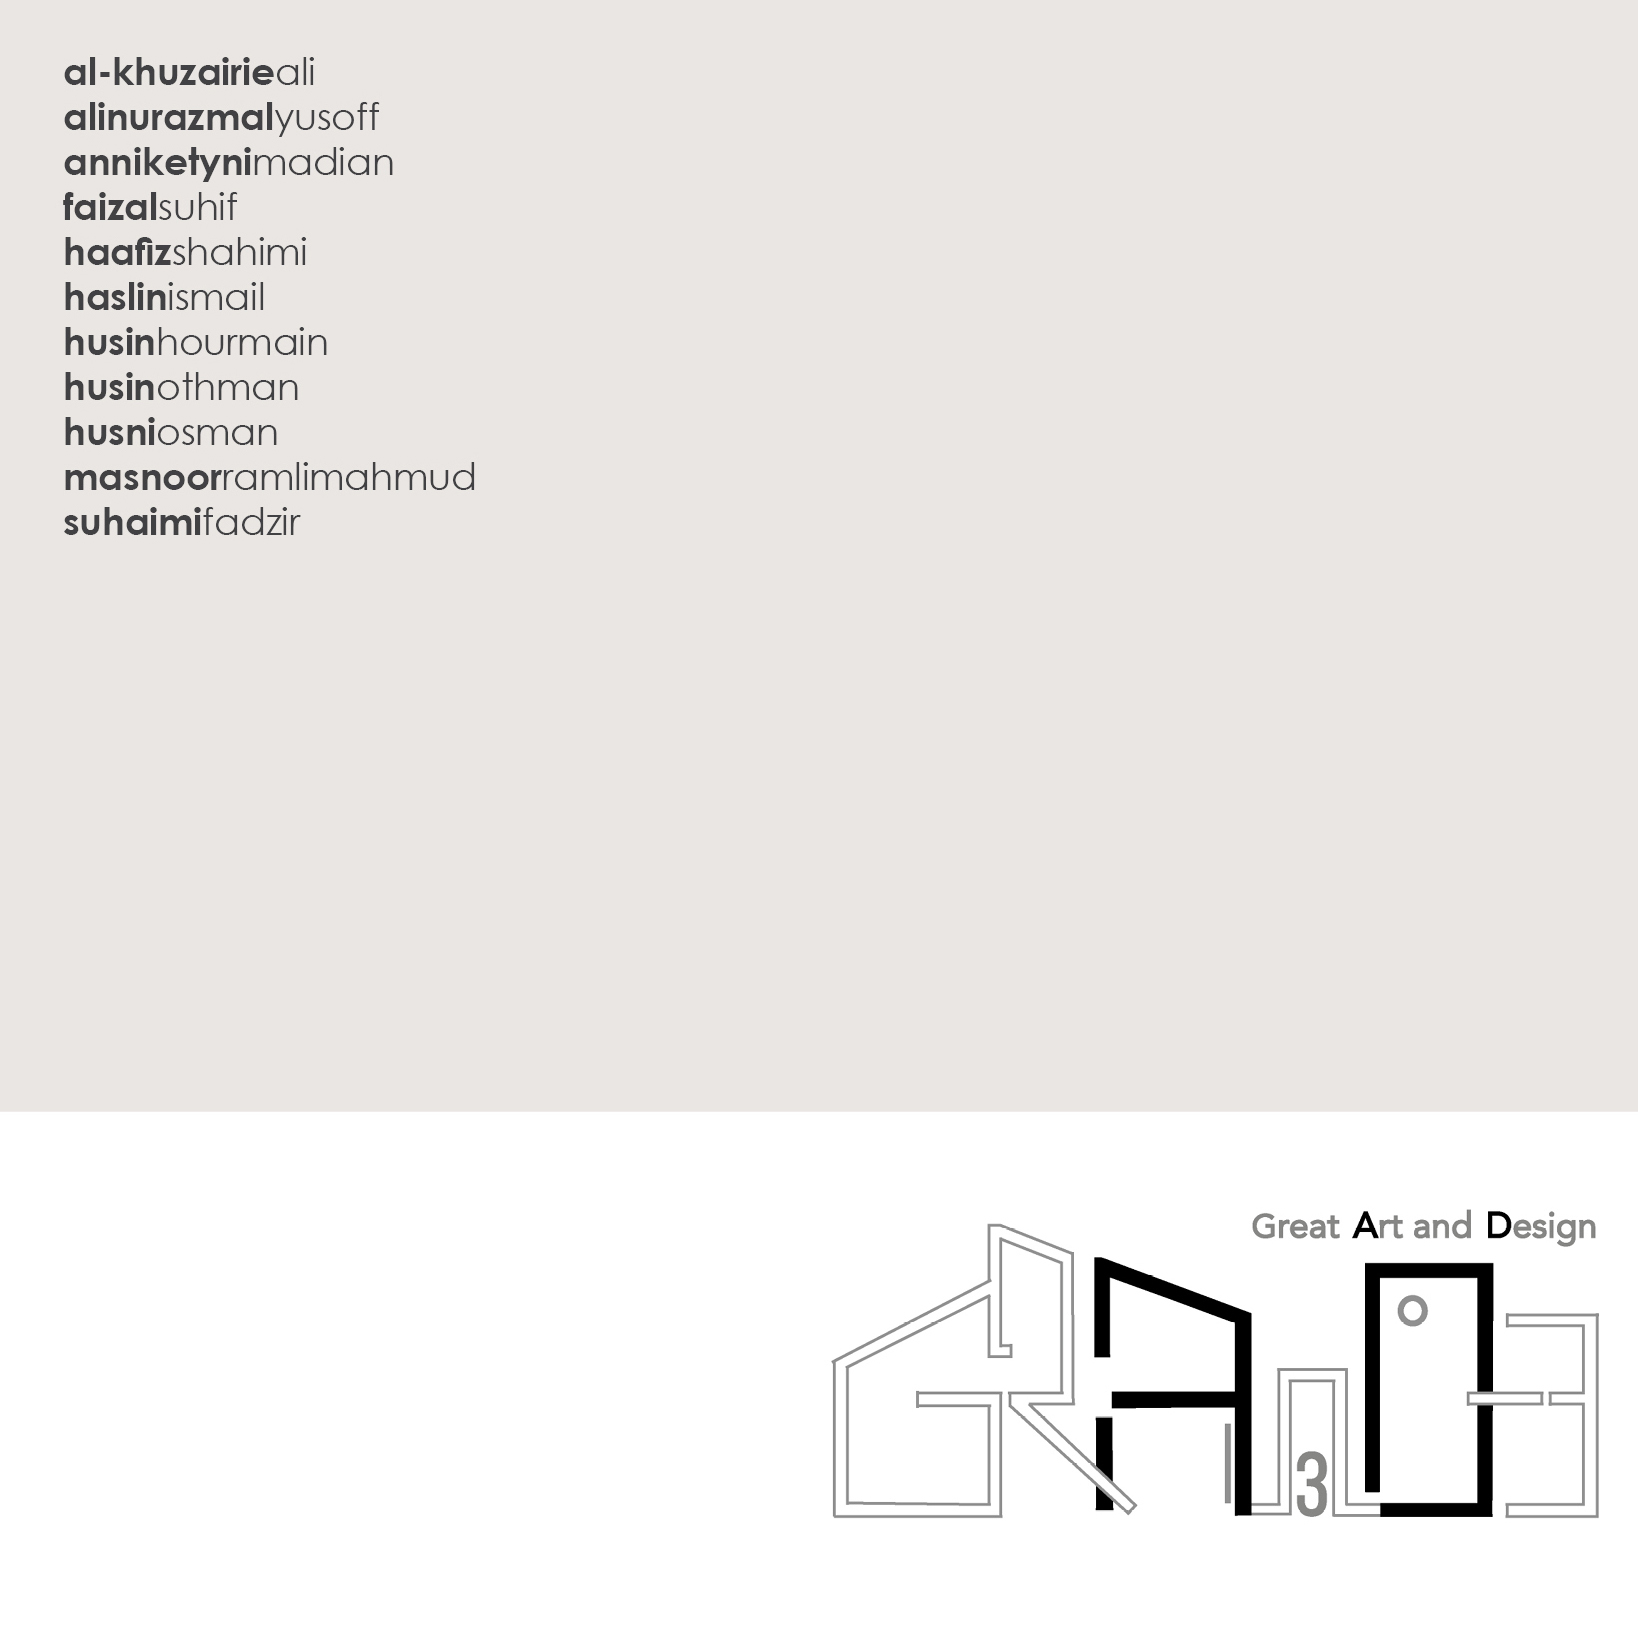 Anniketyni madian archives core design gallery grande 3 ccuart Images